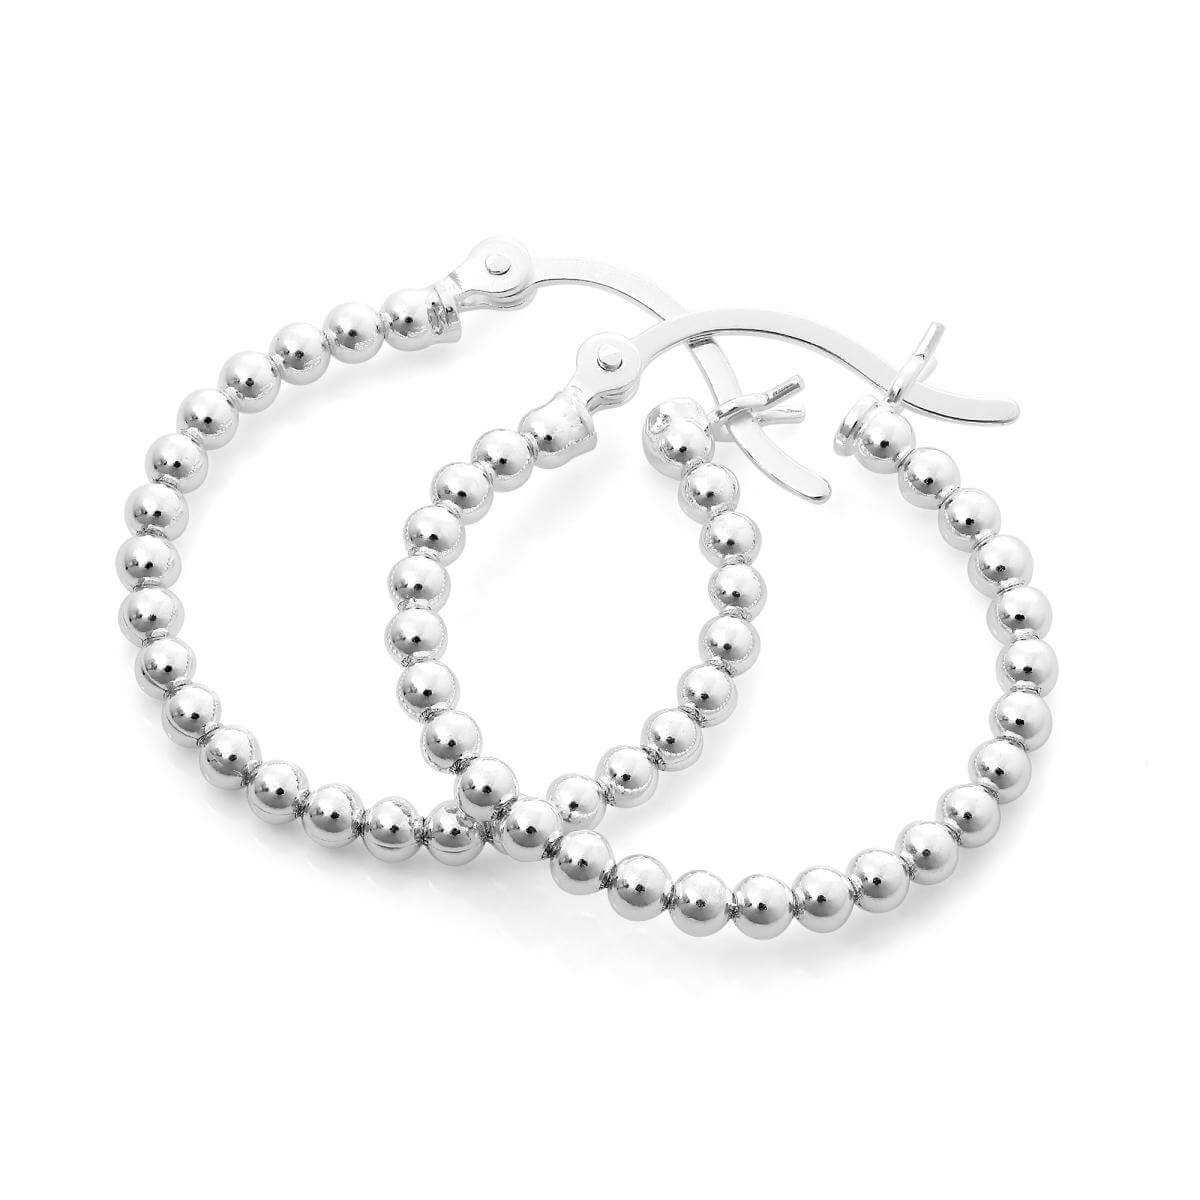 Sterling Silver 21mm Beaded Hoop Earrings